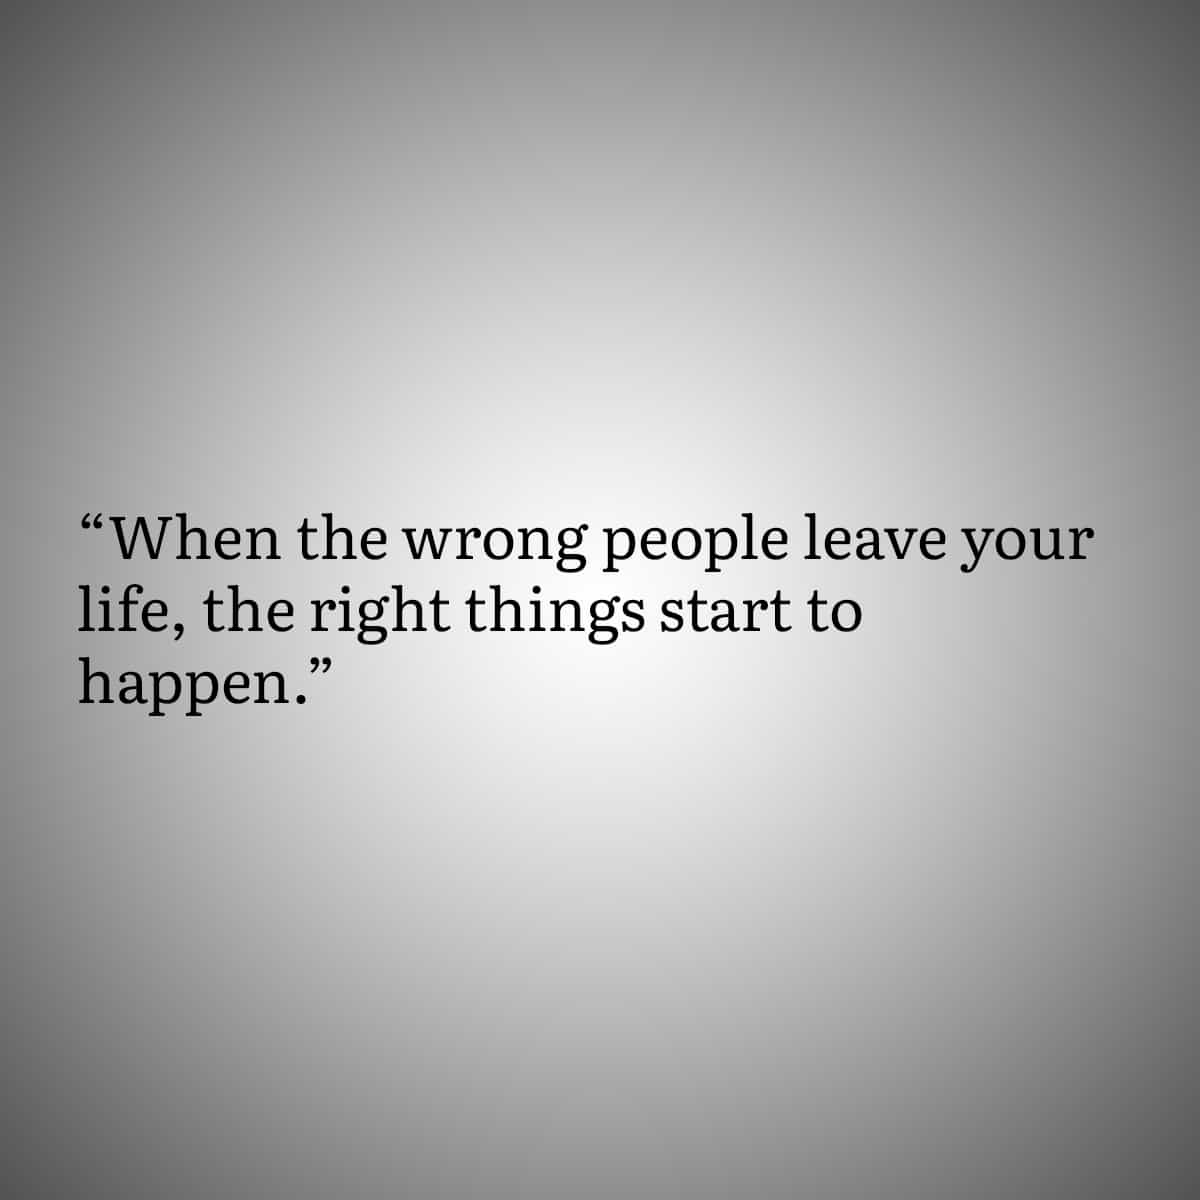 Quote 6: When the wrong people leave your life, the right things start to happen.